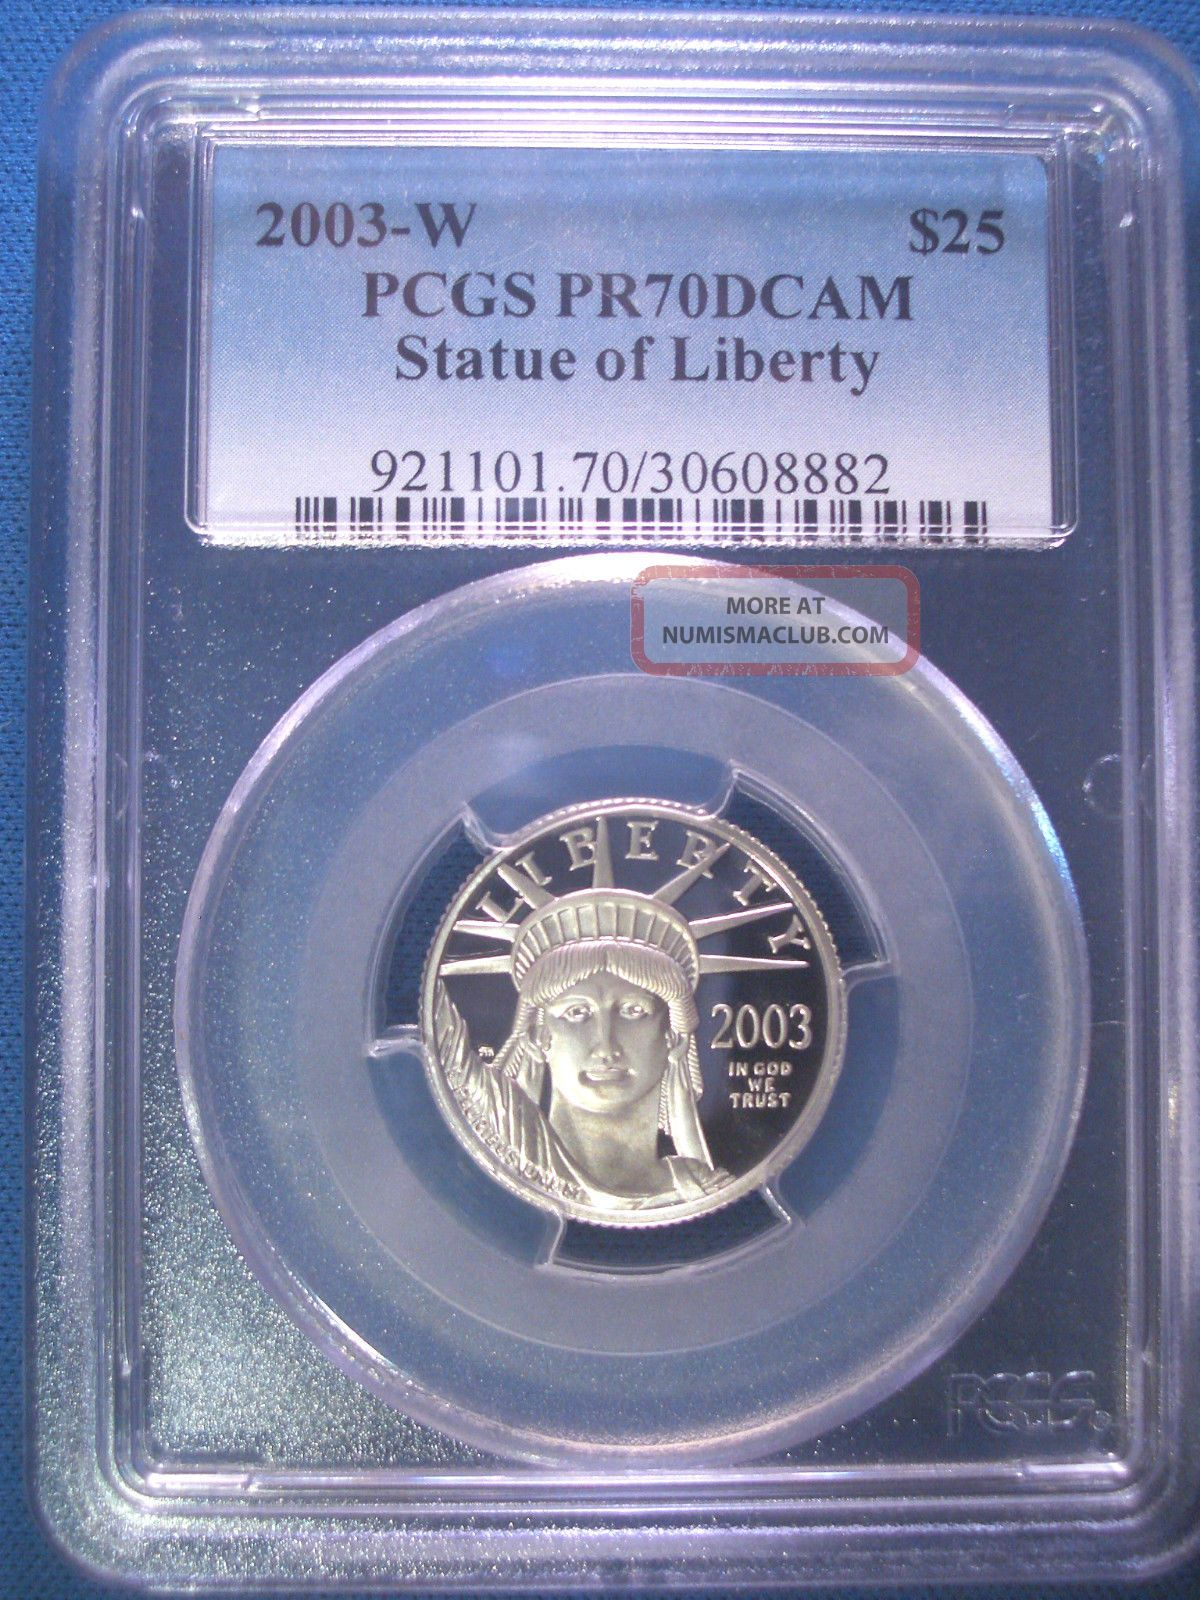 2003 - W $25 Platinum Pcgs Pr70 Dcam Proof Eagle Dollar $800,  Pop Only 189 Platinum photo